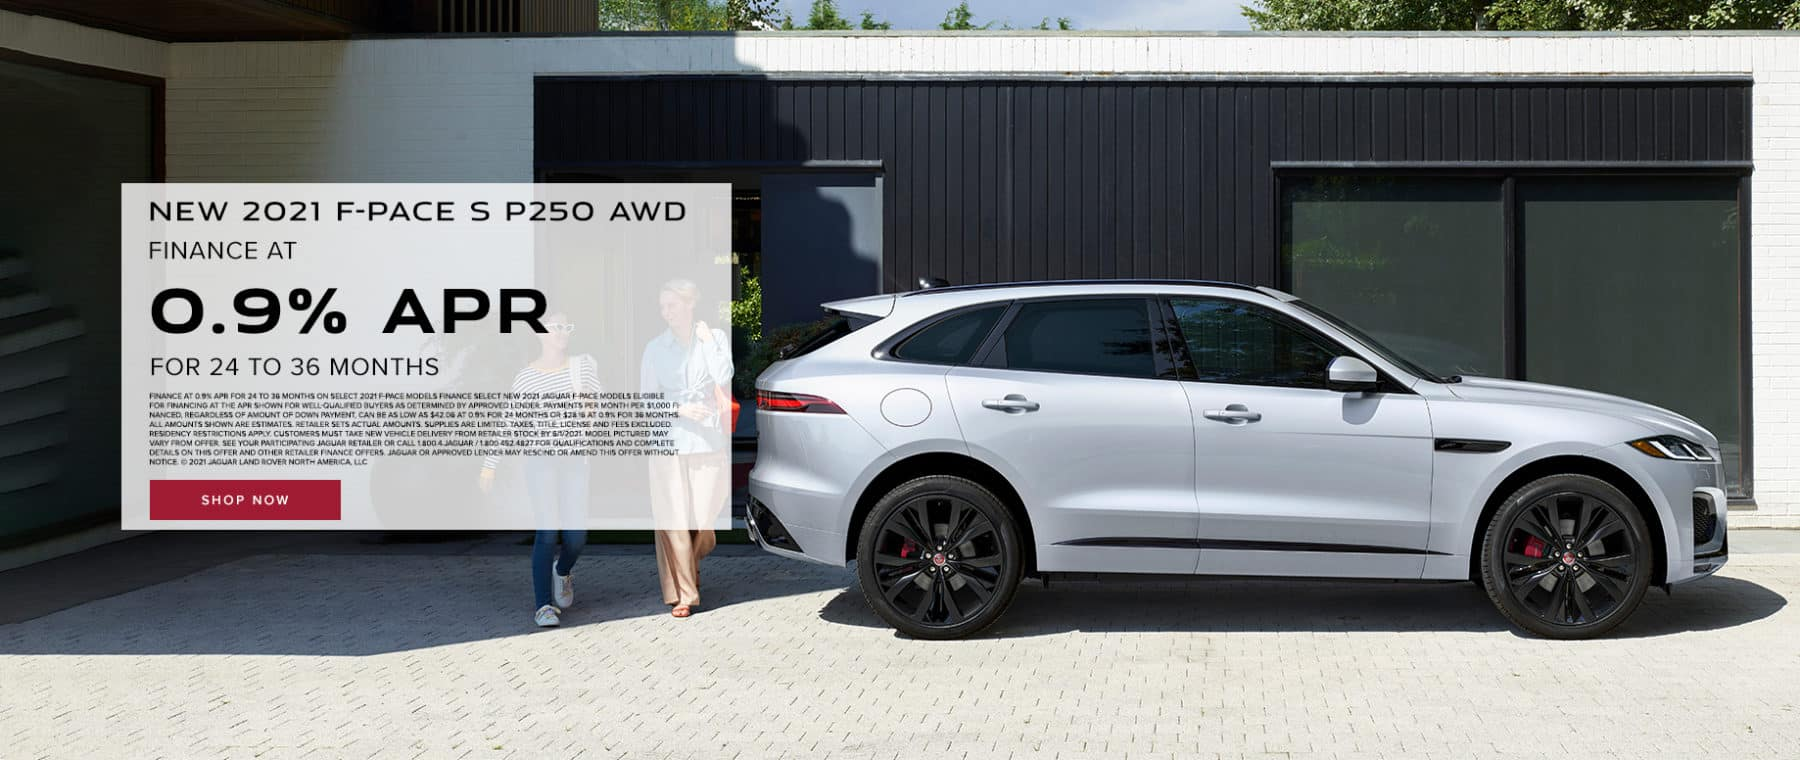 NEW 2021 F-PACE S P250 AWD Finance at 0.9% for 24 to 36 months